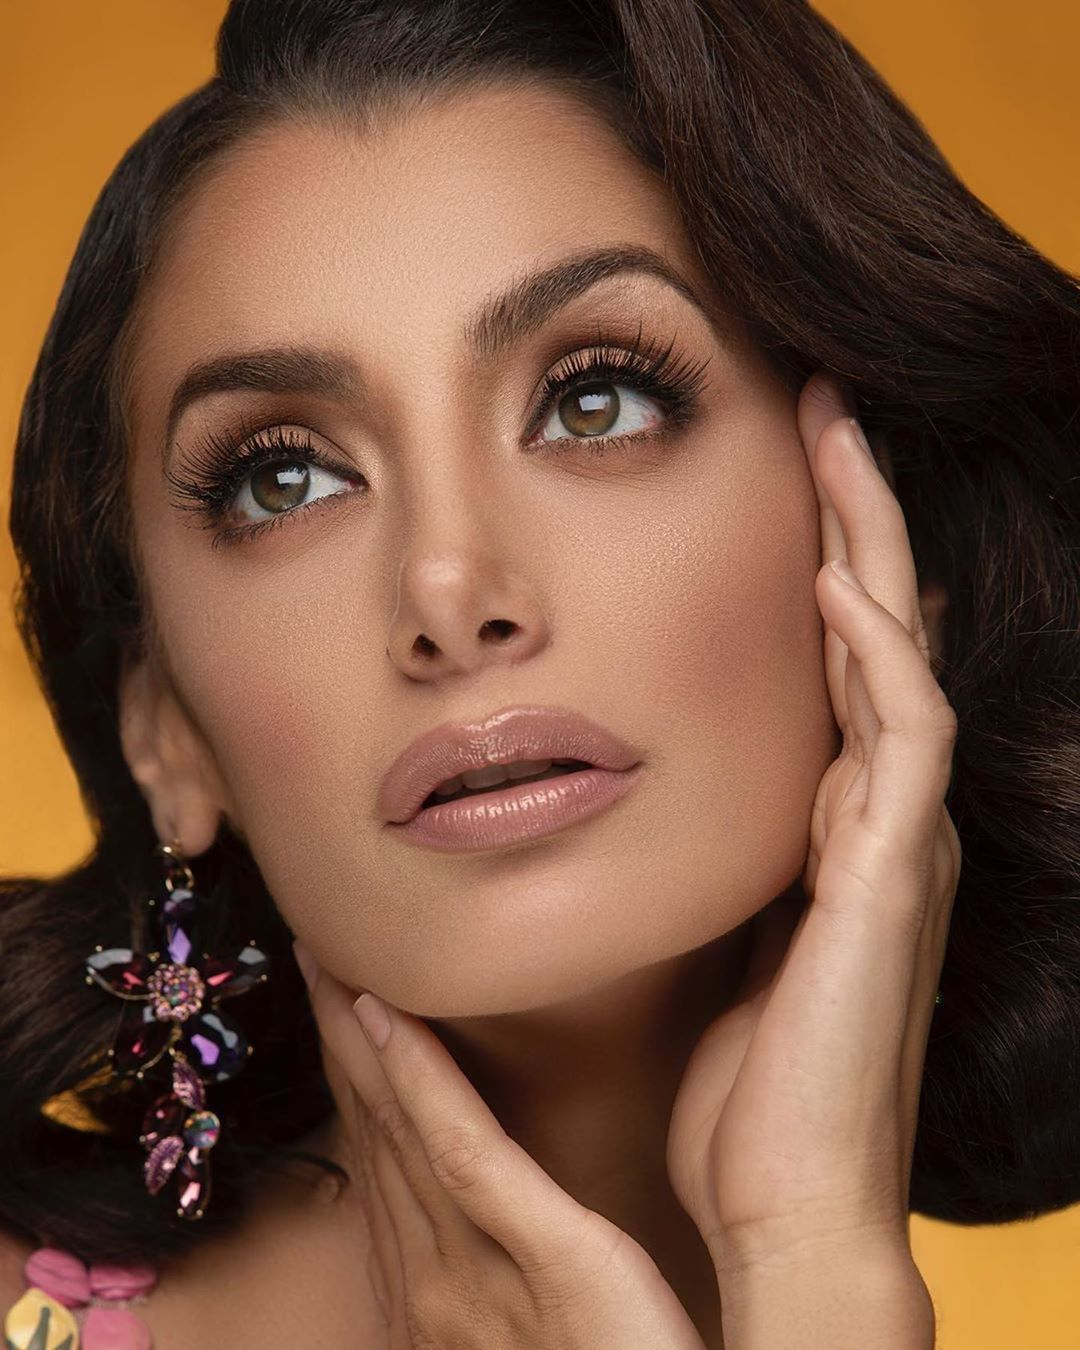 ivana carolina irizarry, miss international puerto rico 2019. 68802710